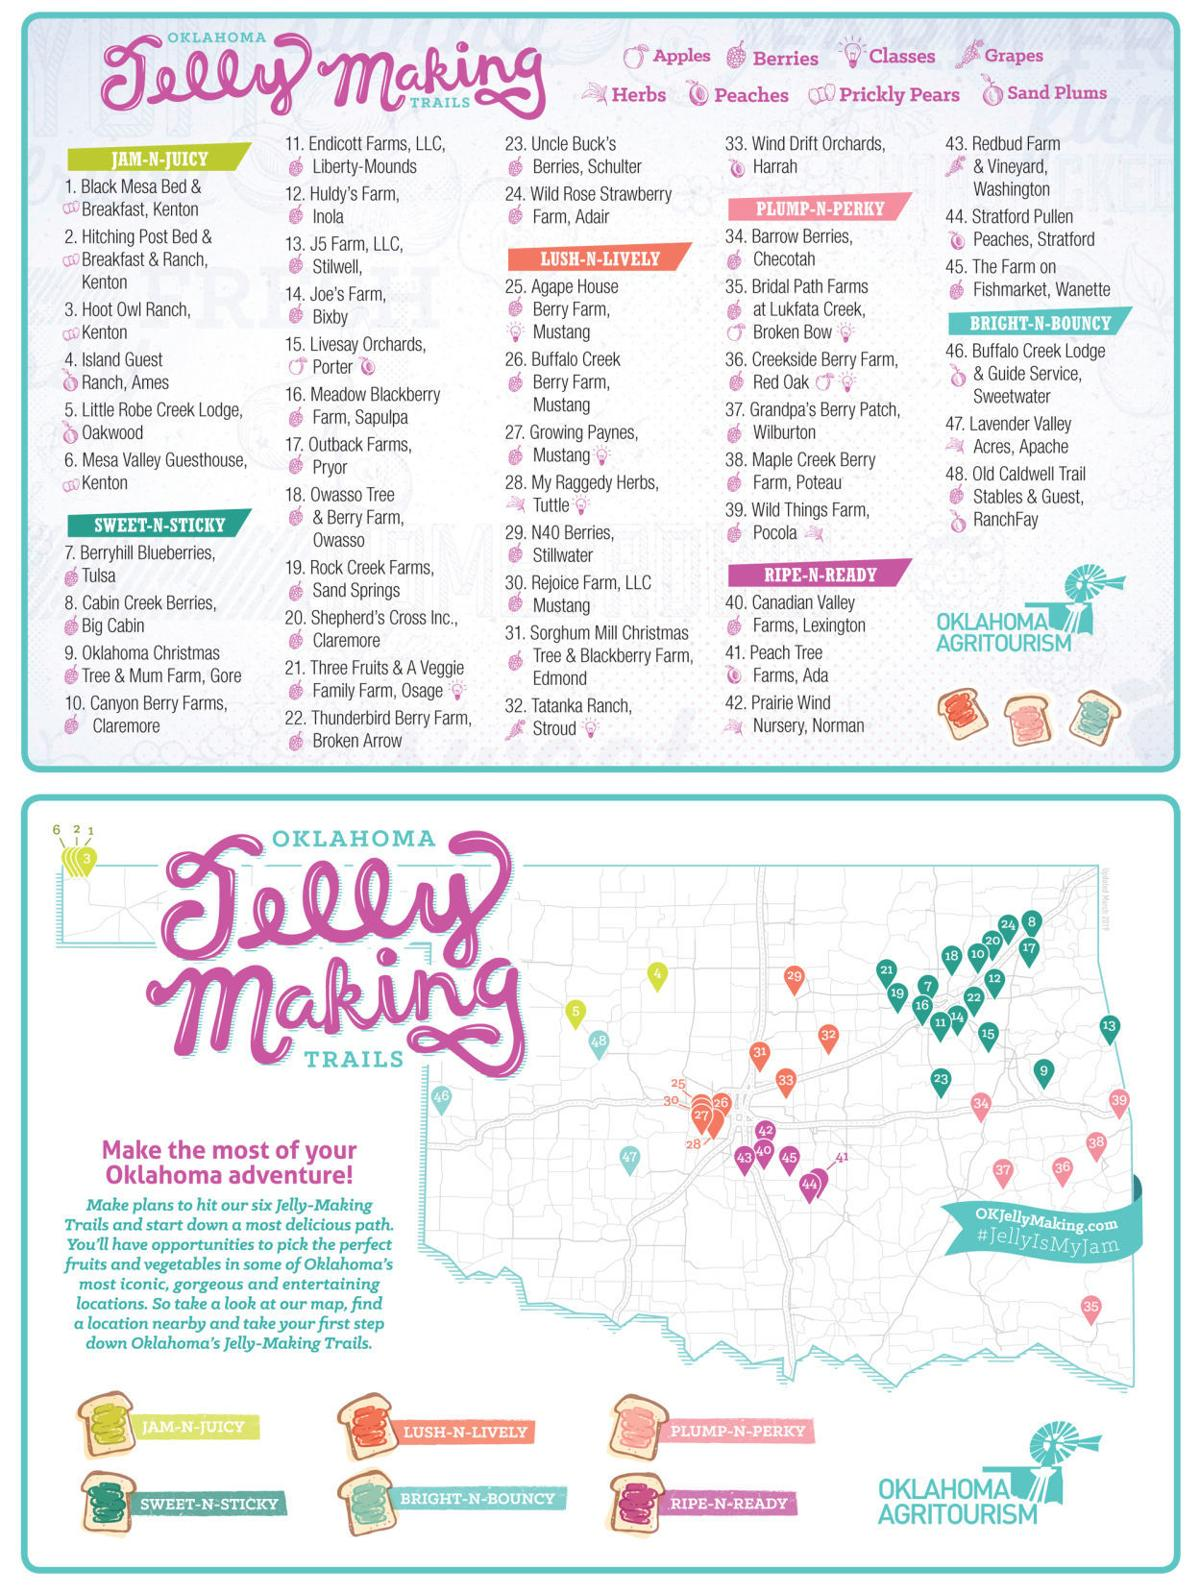 Find Oklahoma's Jelly-Making Trails